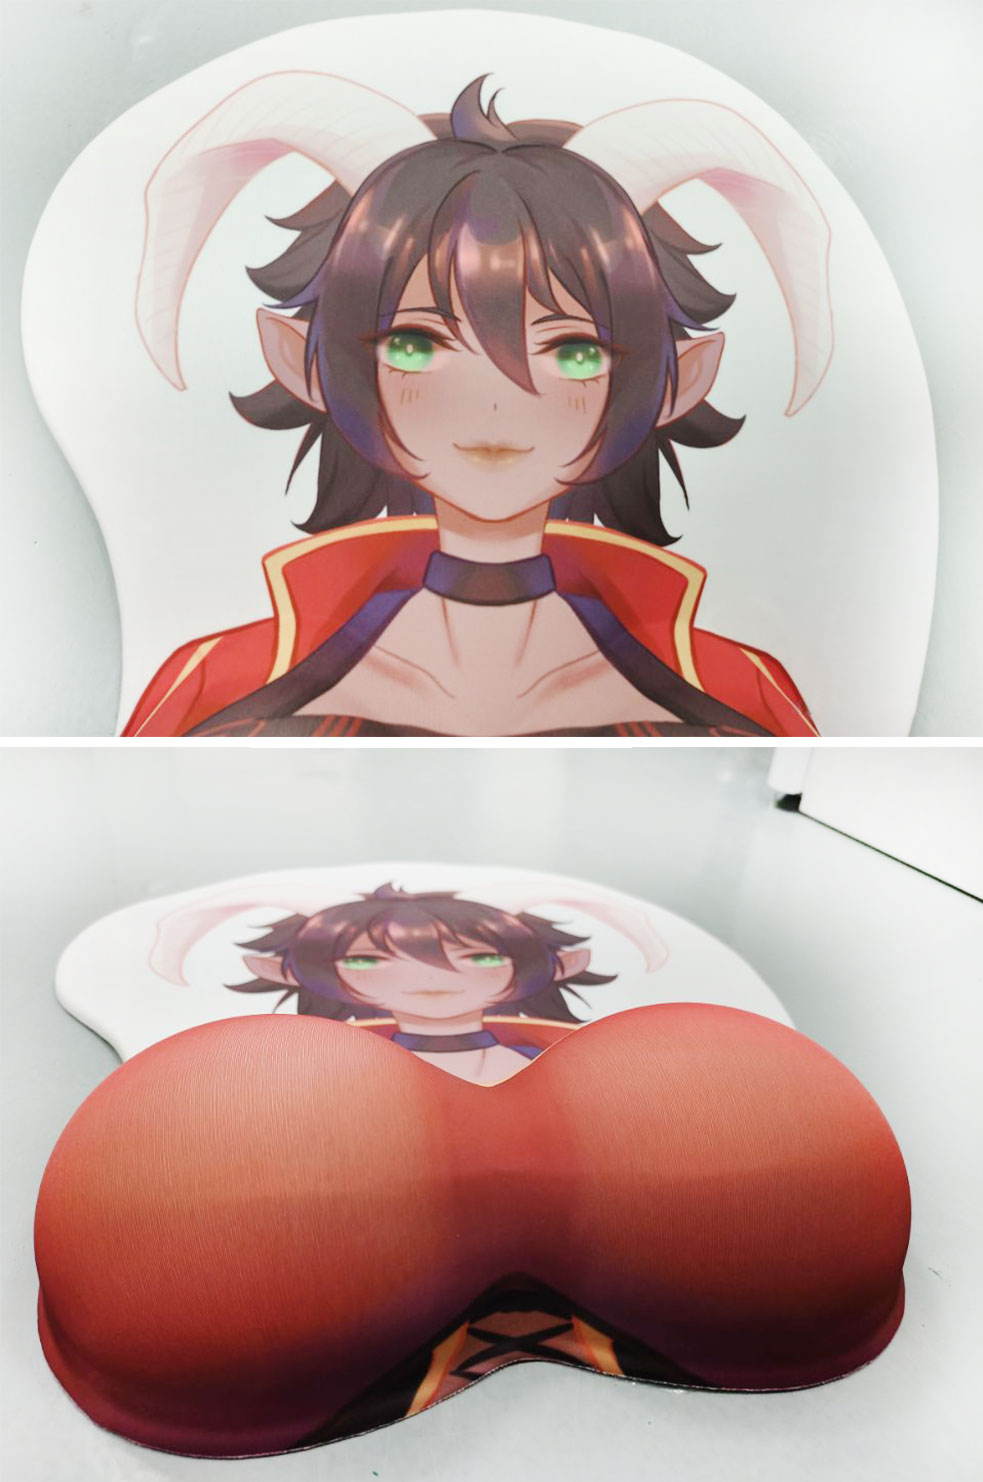 saber life size butt mouse pad 1047 - Anime Mousepads